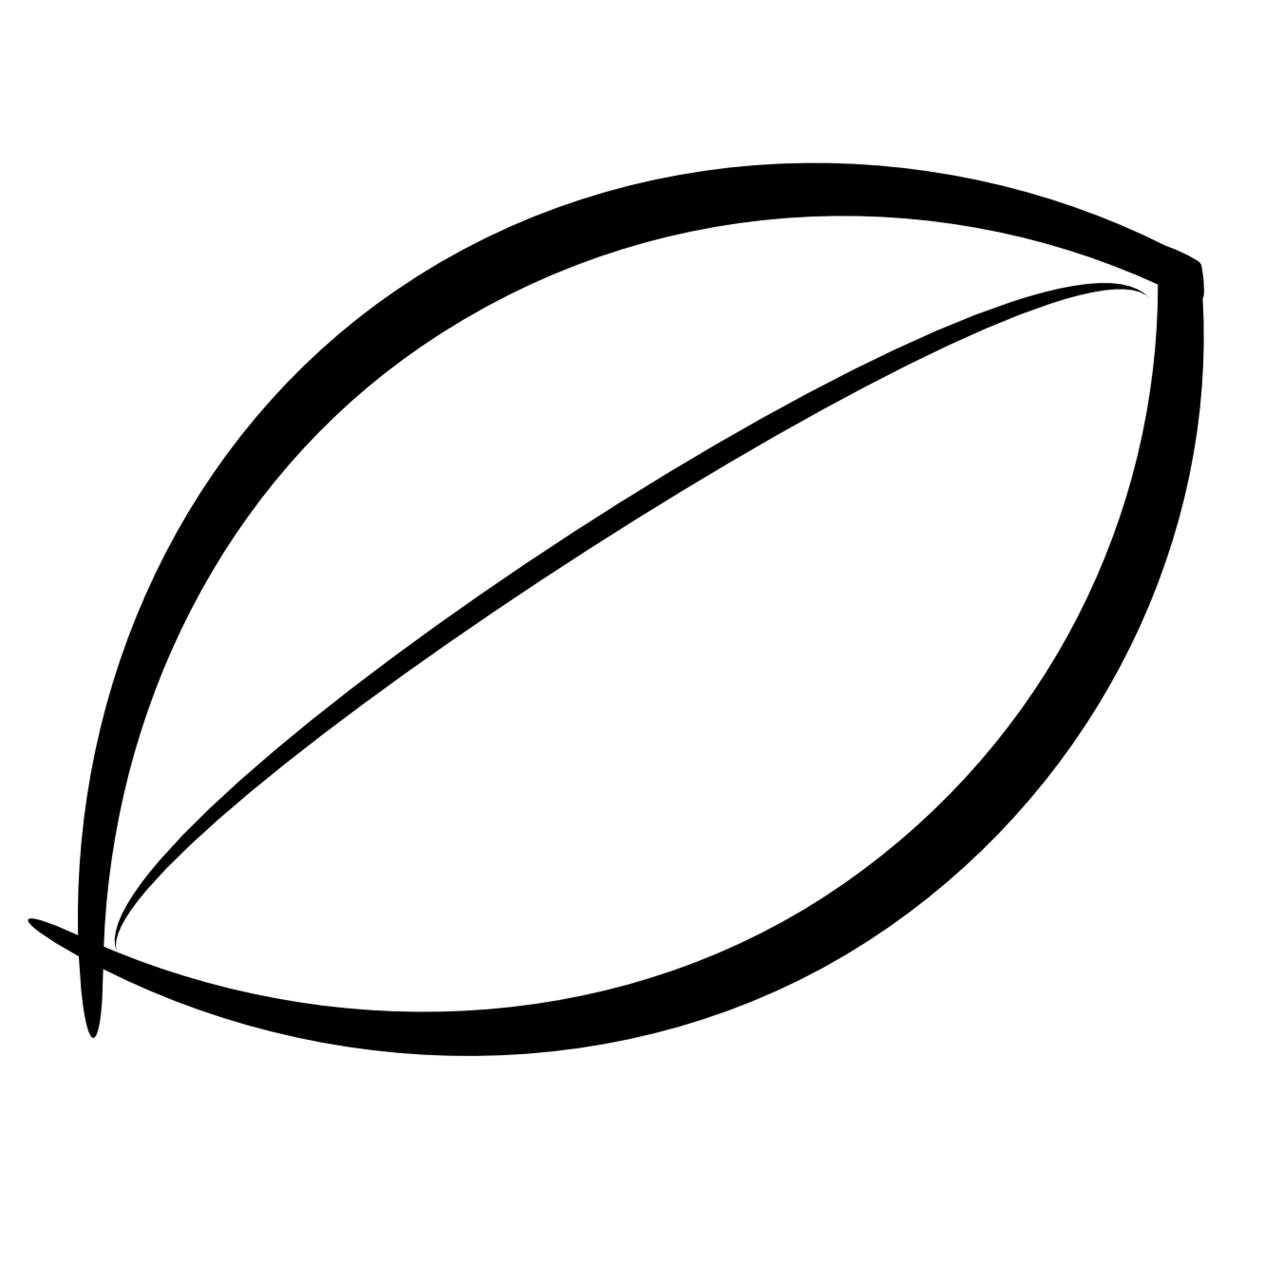 Free Leaves Black Cliparts Download Free Clip Art Free